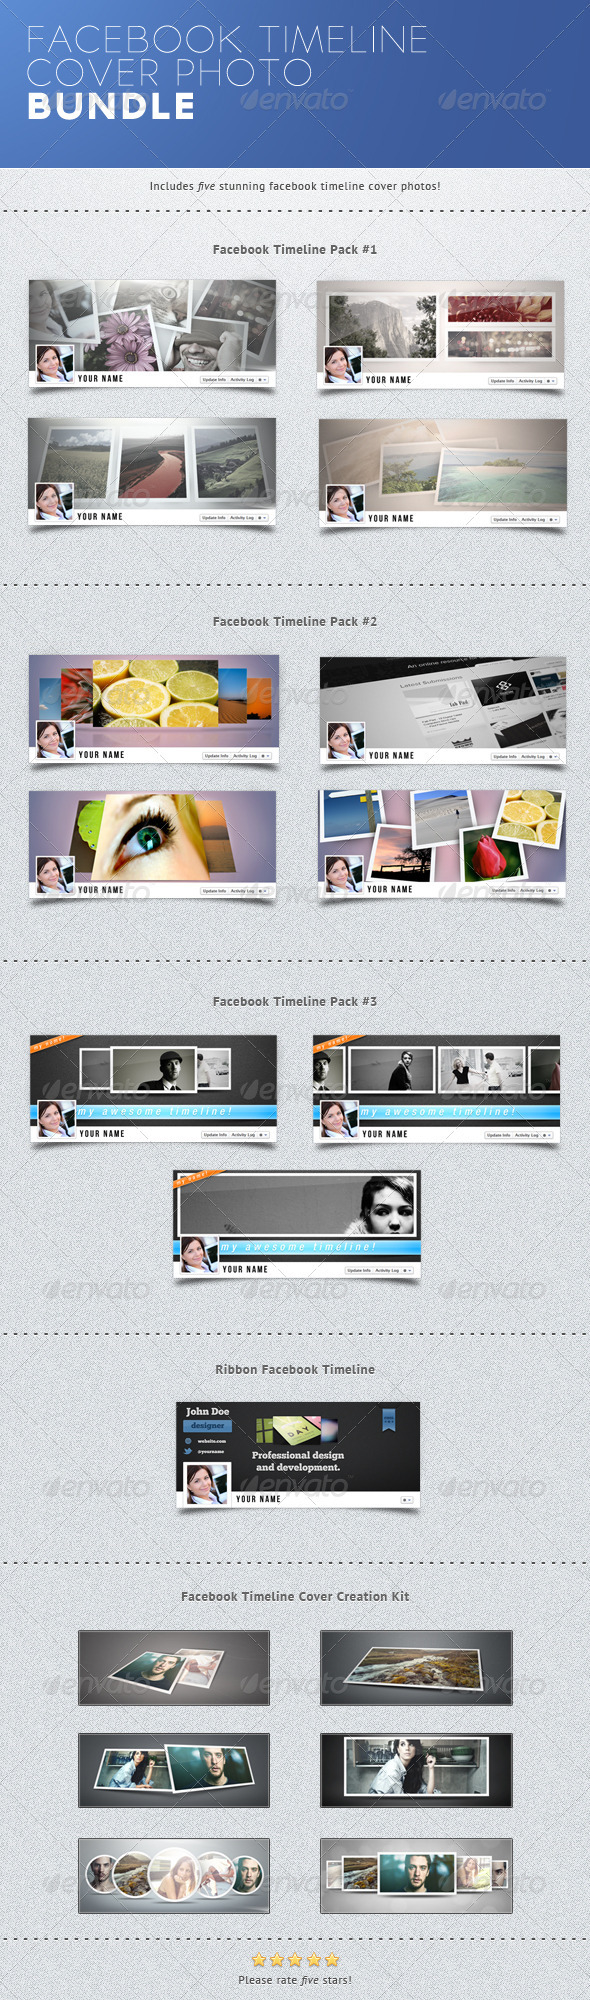 Facebook Timeline Covers Bundle - Facebook Timeline Covers Social Media